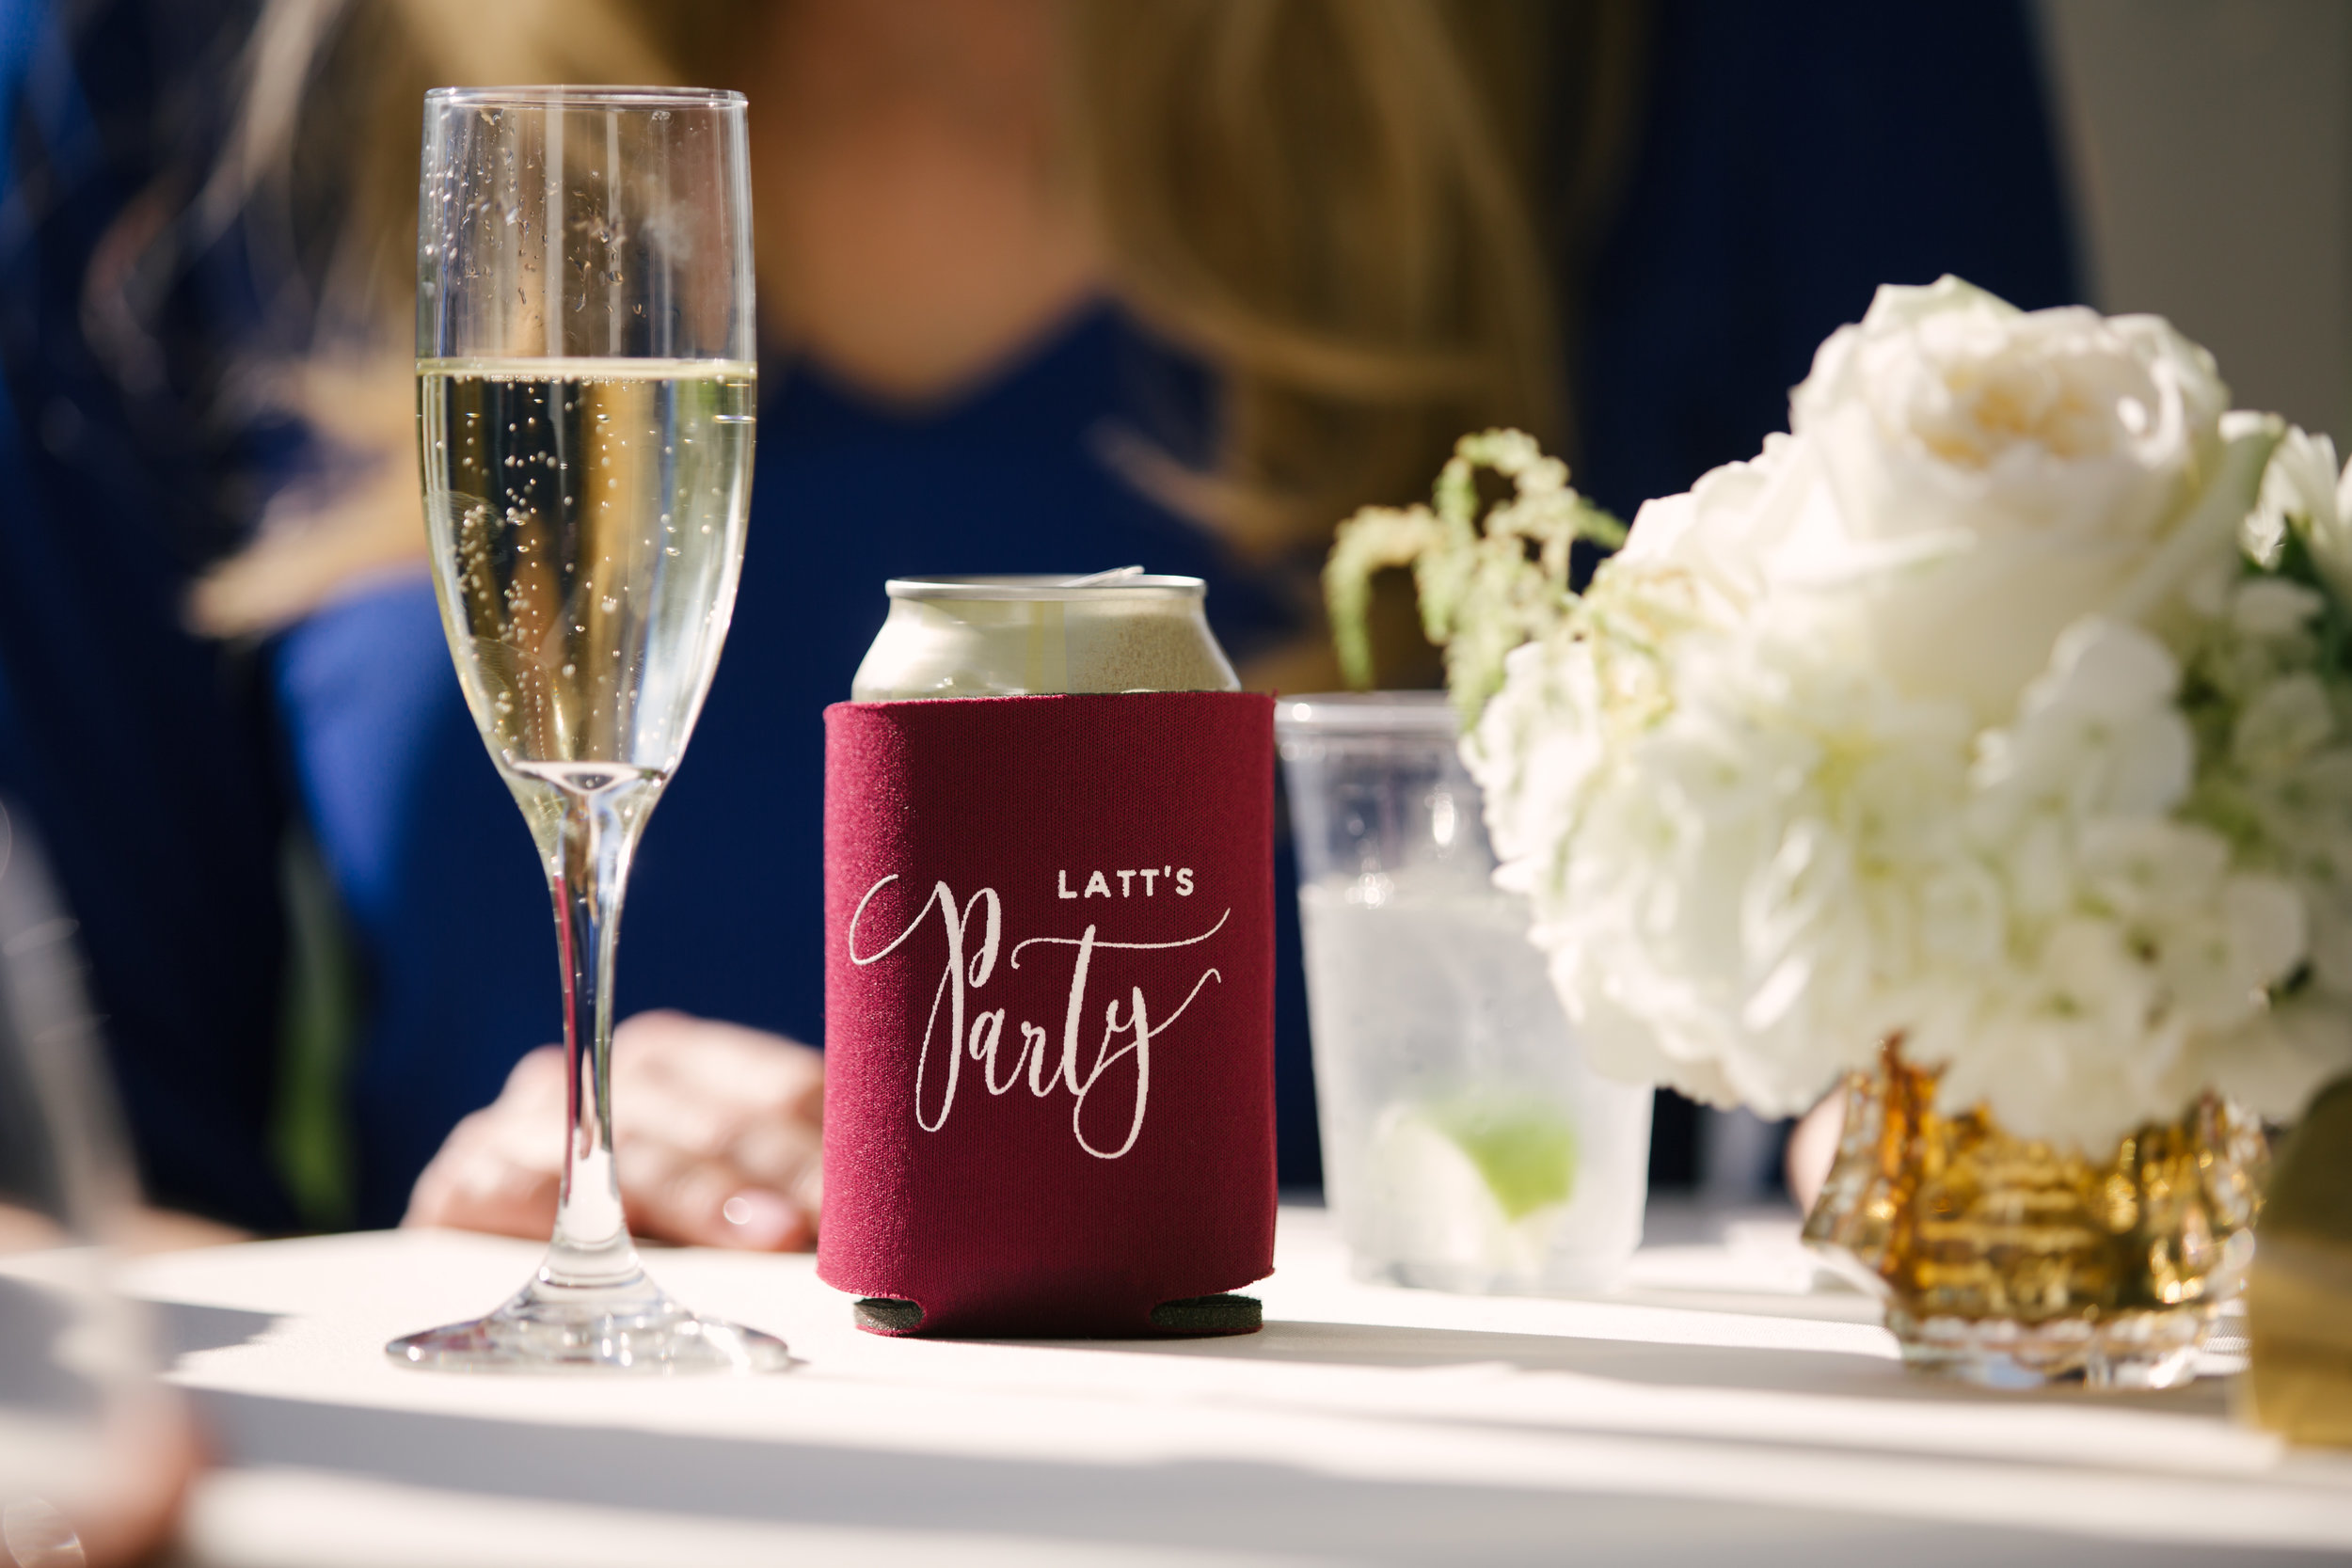 """Cocktails were tucked into custom koozie favors that read """"Latt's Party!"""""""